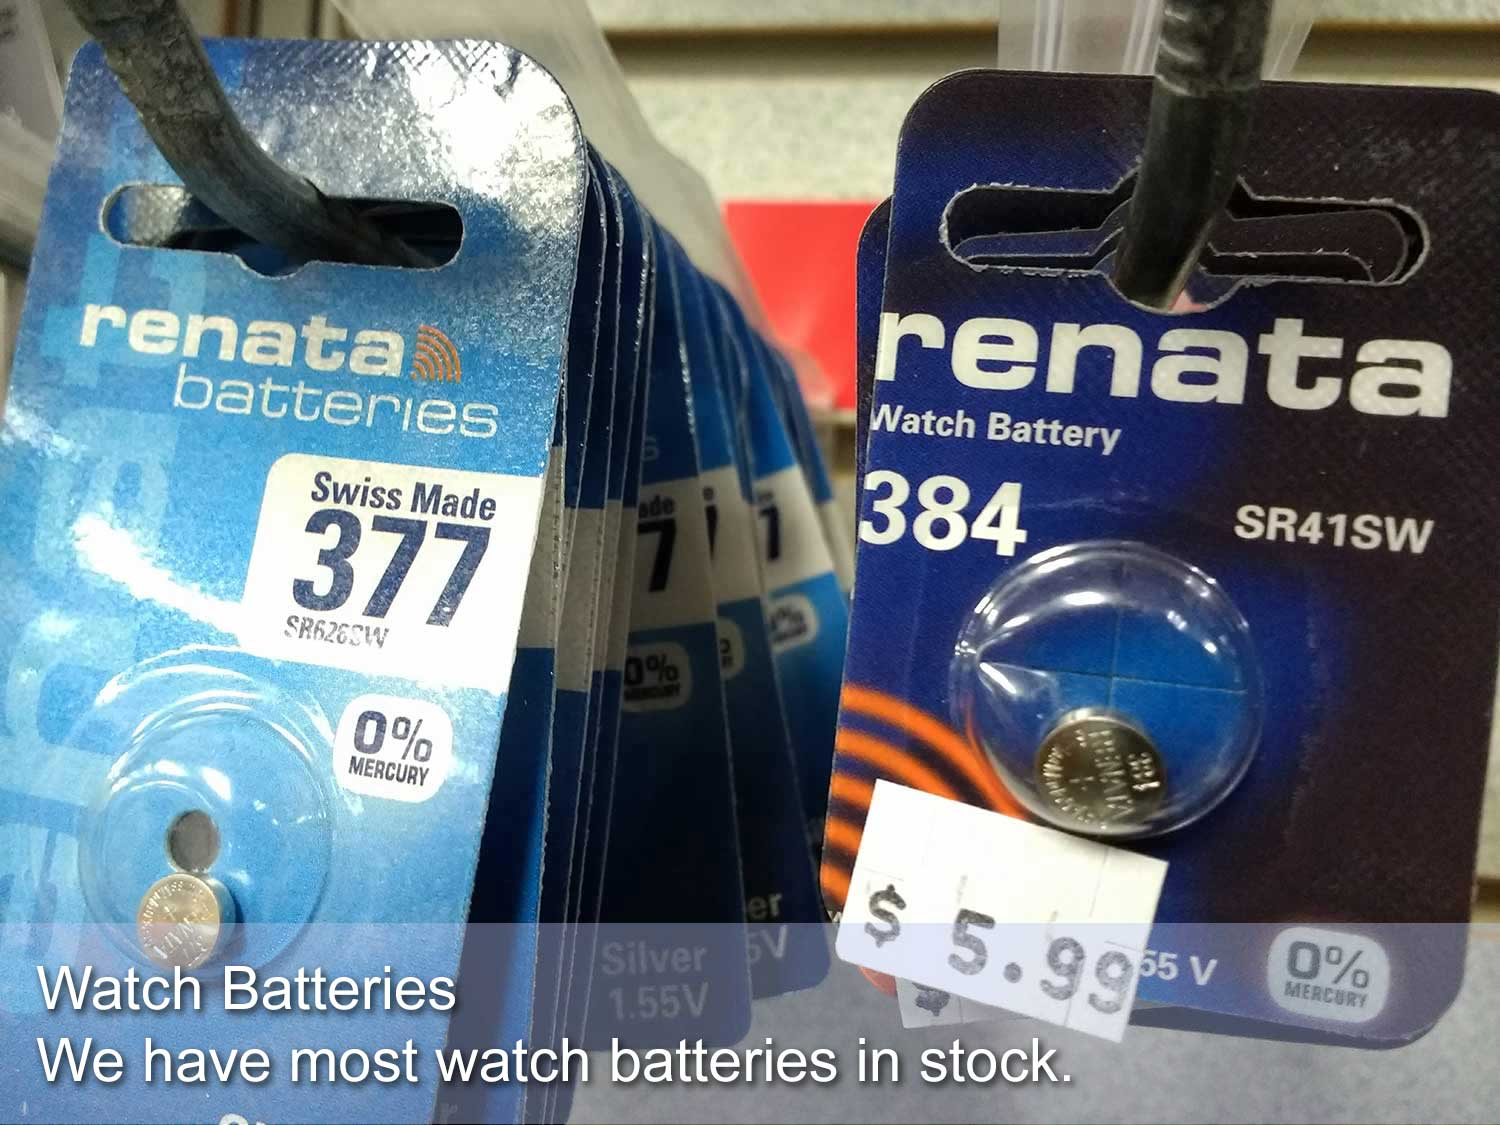 Watch batteries for most models are always in stock.